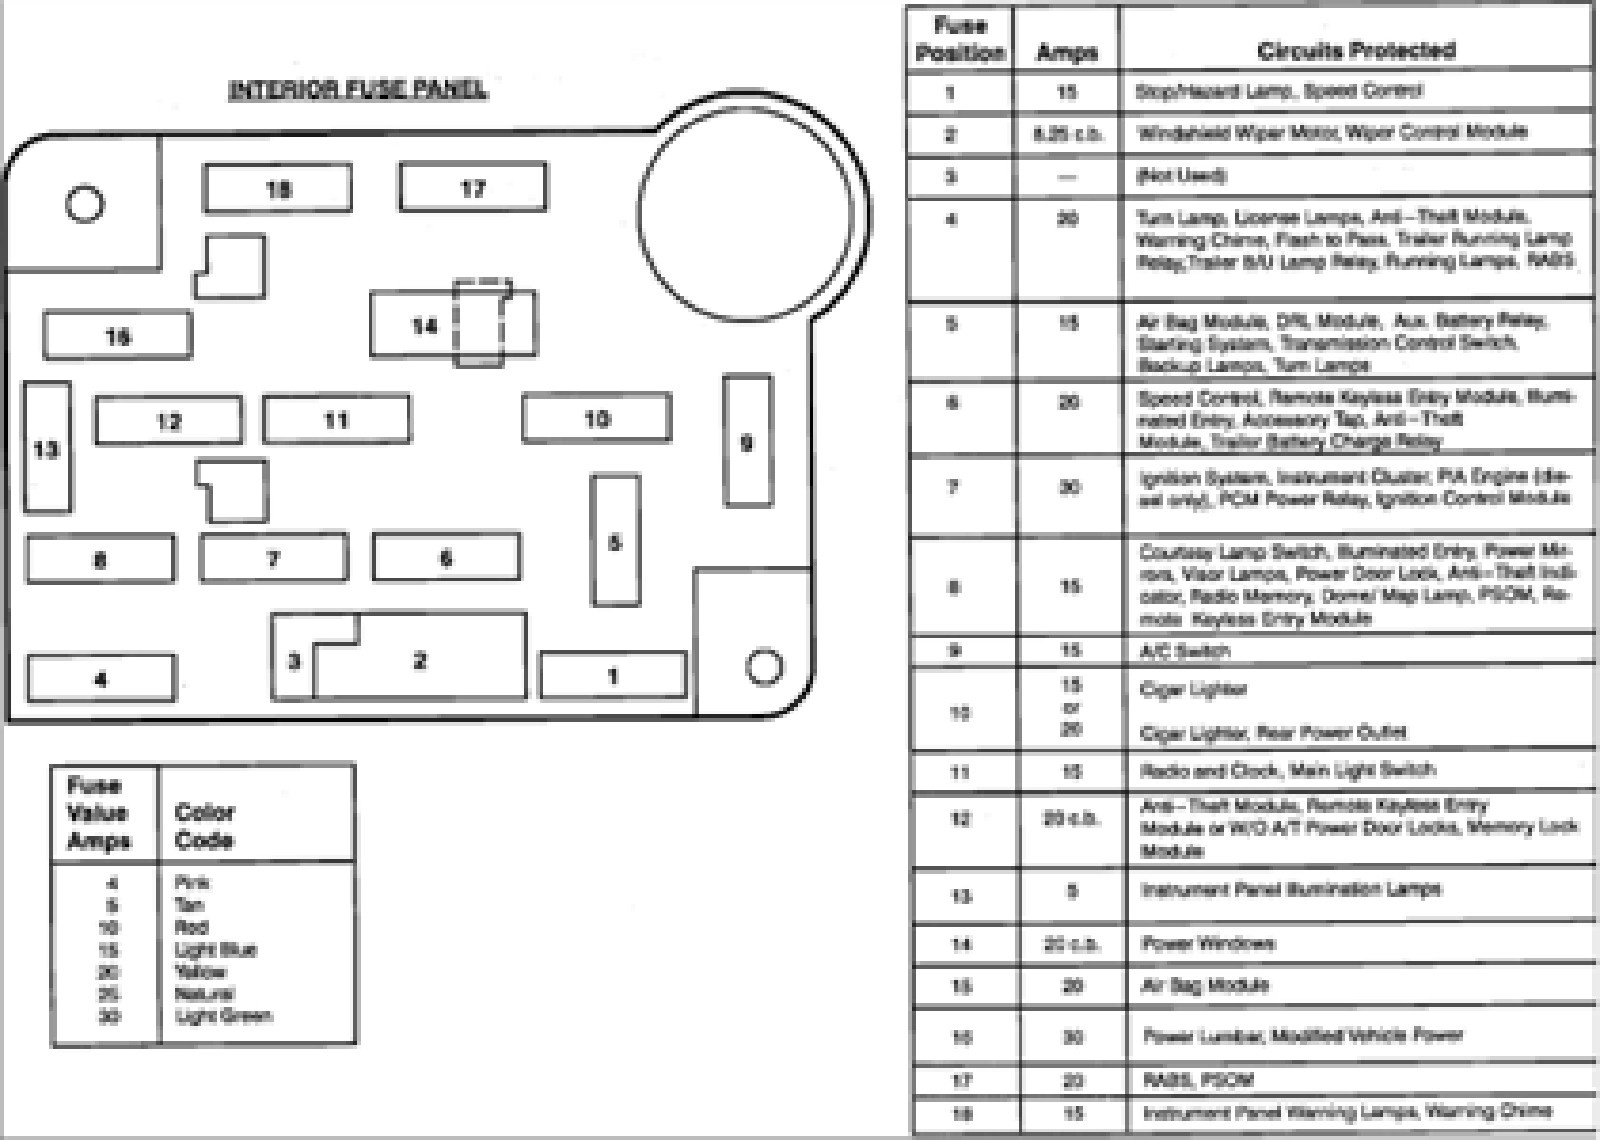 85 Ford F 150 Fuse Box Diagram Wiring Library F350 For A 1993 Econoline Van Mark 3